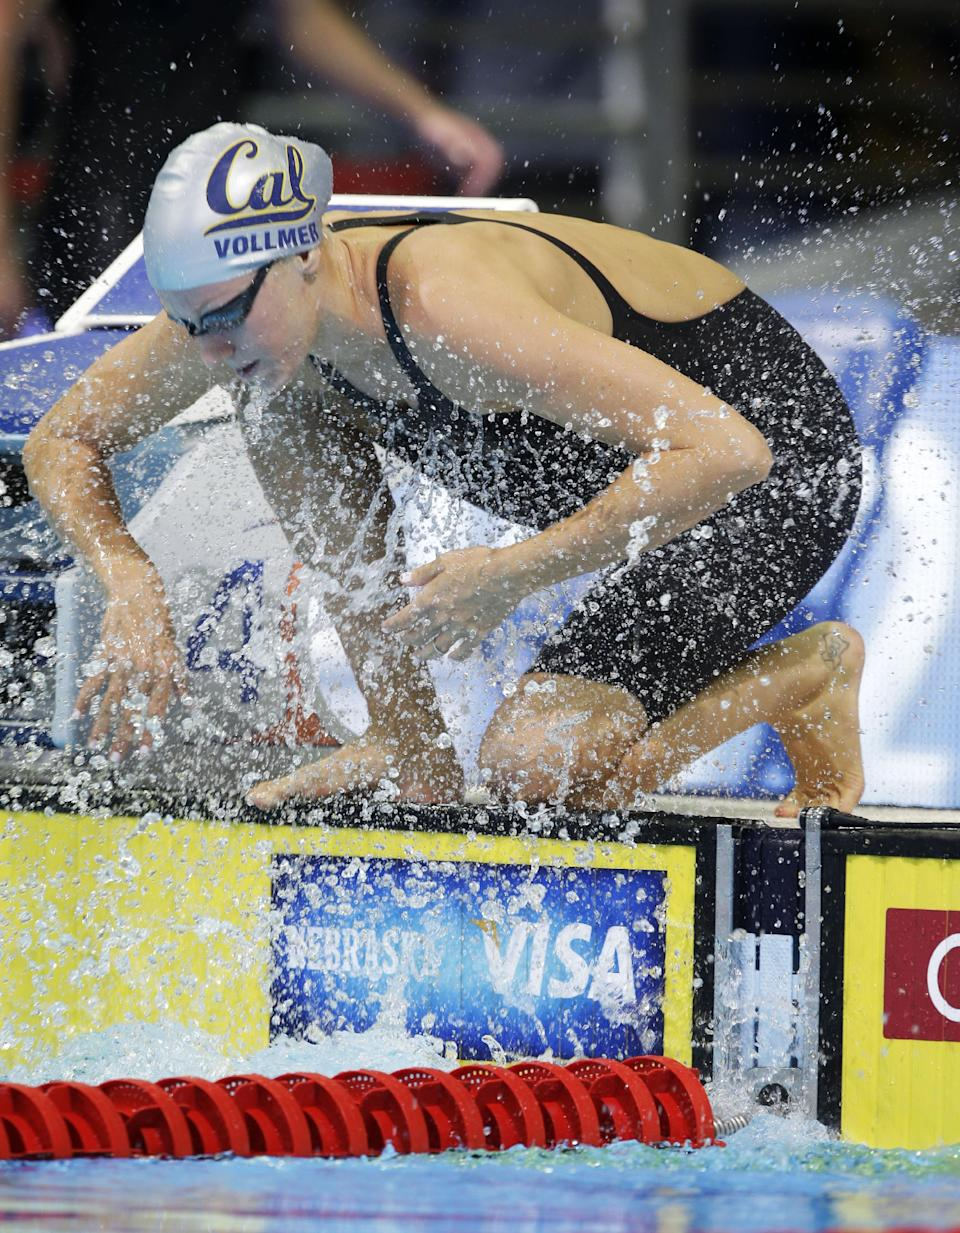 Dana Vollmer prepares to swim in the women's 200-meter freestyle preliminaries at the U.S. Olympic swimming trials on Wednesday, June 27, 2012, in Omaha, Neb. (AP Photo/Mark Humphrey)